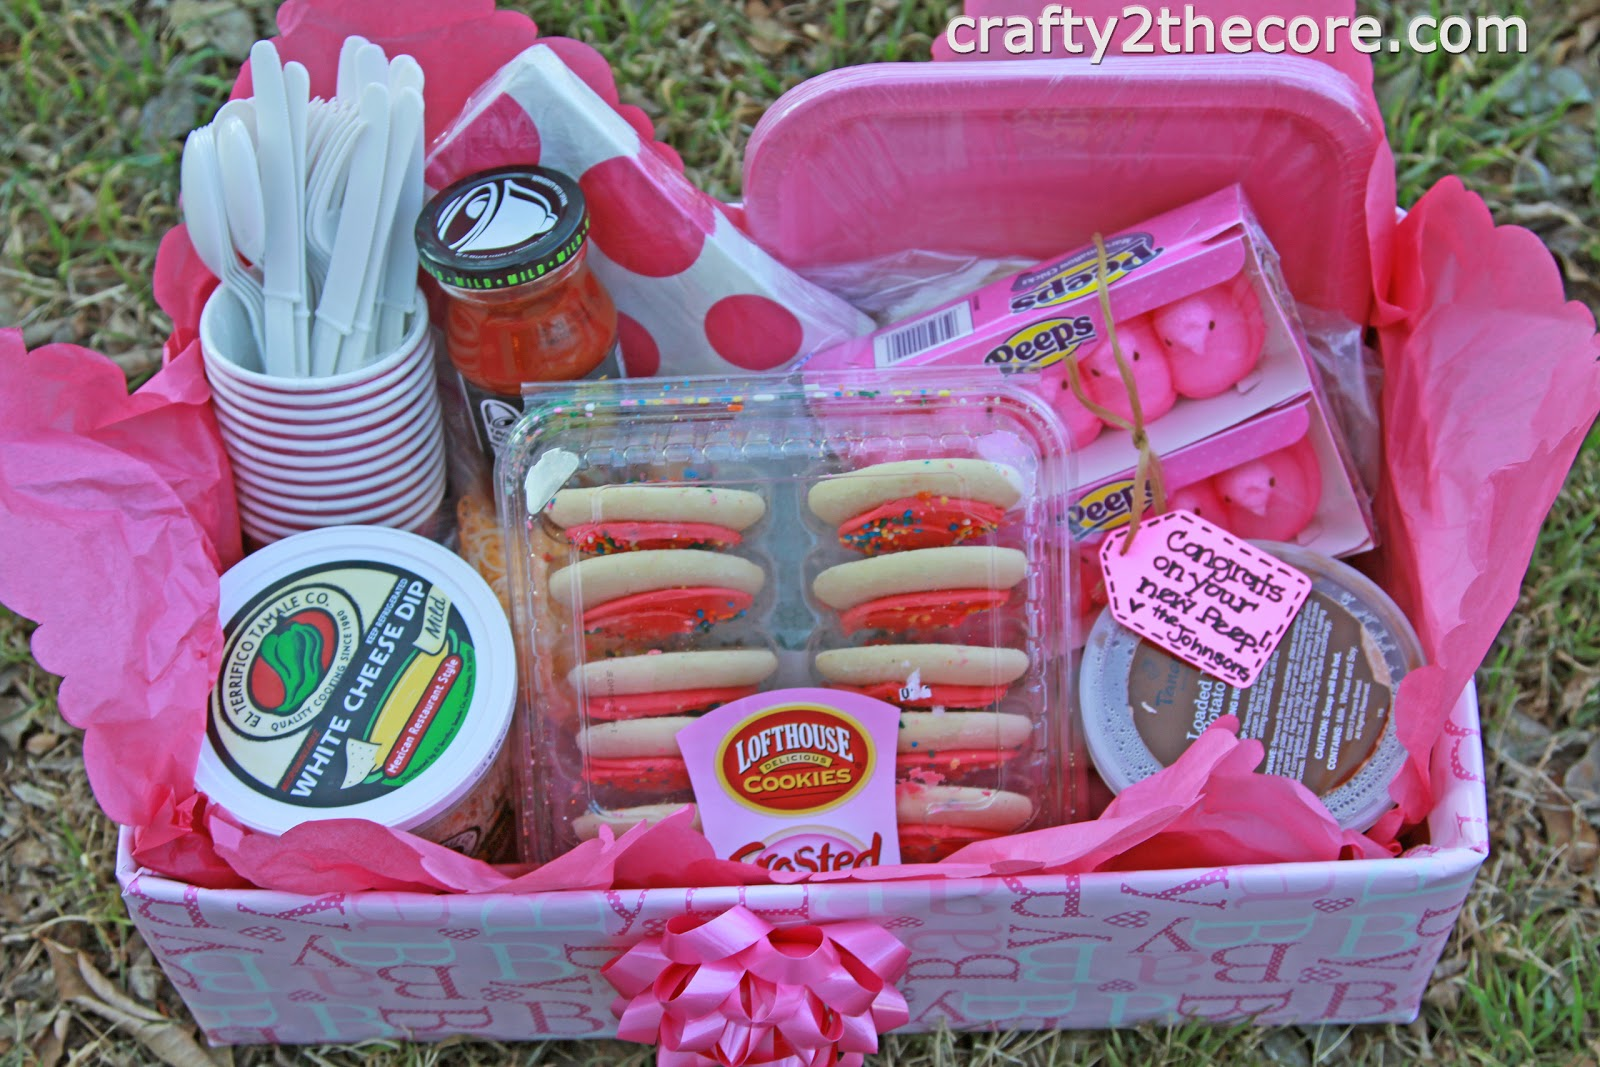 ~Meal Box~ A creative idea for taking a meal to someone whether it's for a new baby, illness, death in the family, etc. ~by Crafty 2 the Core~